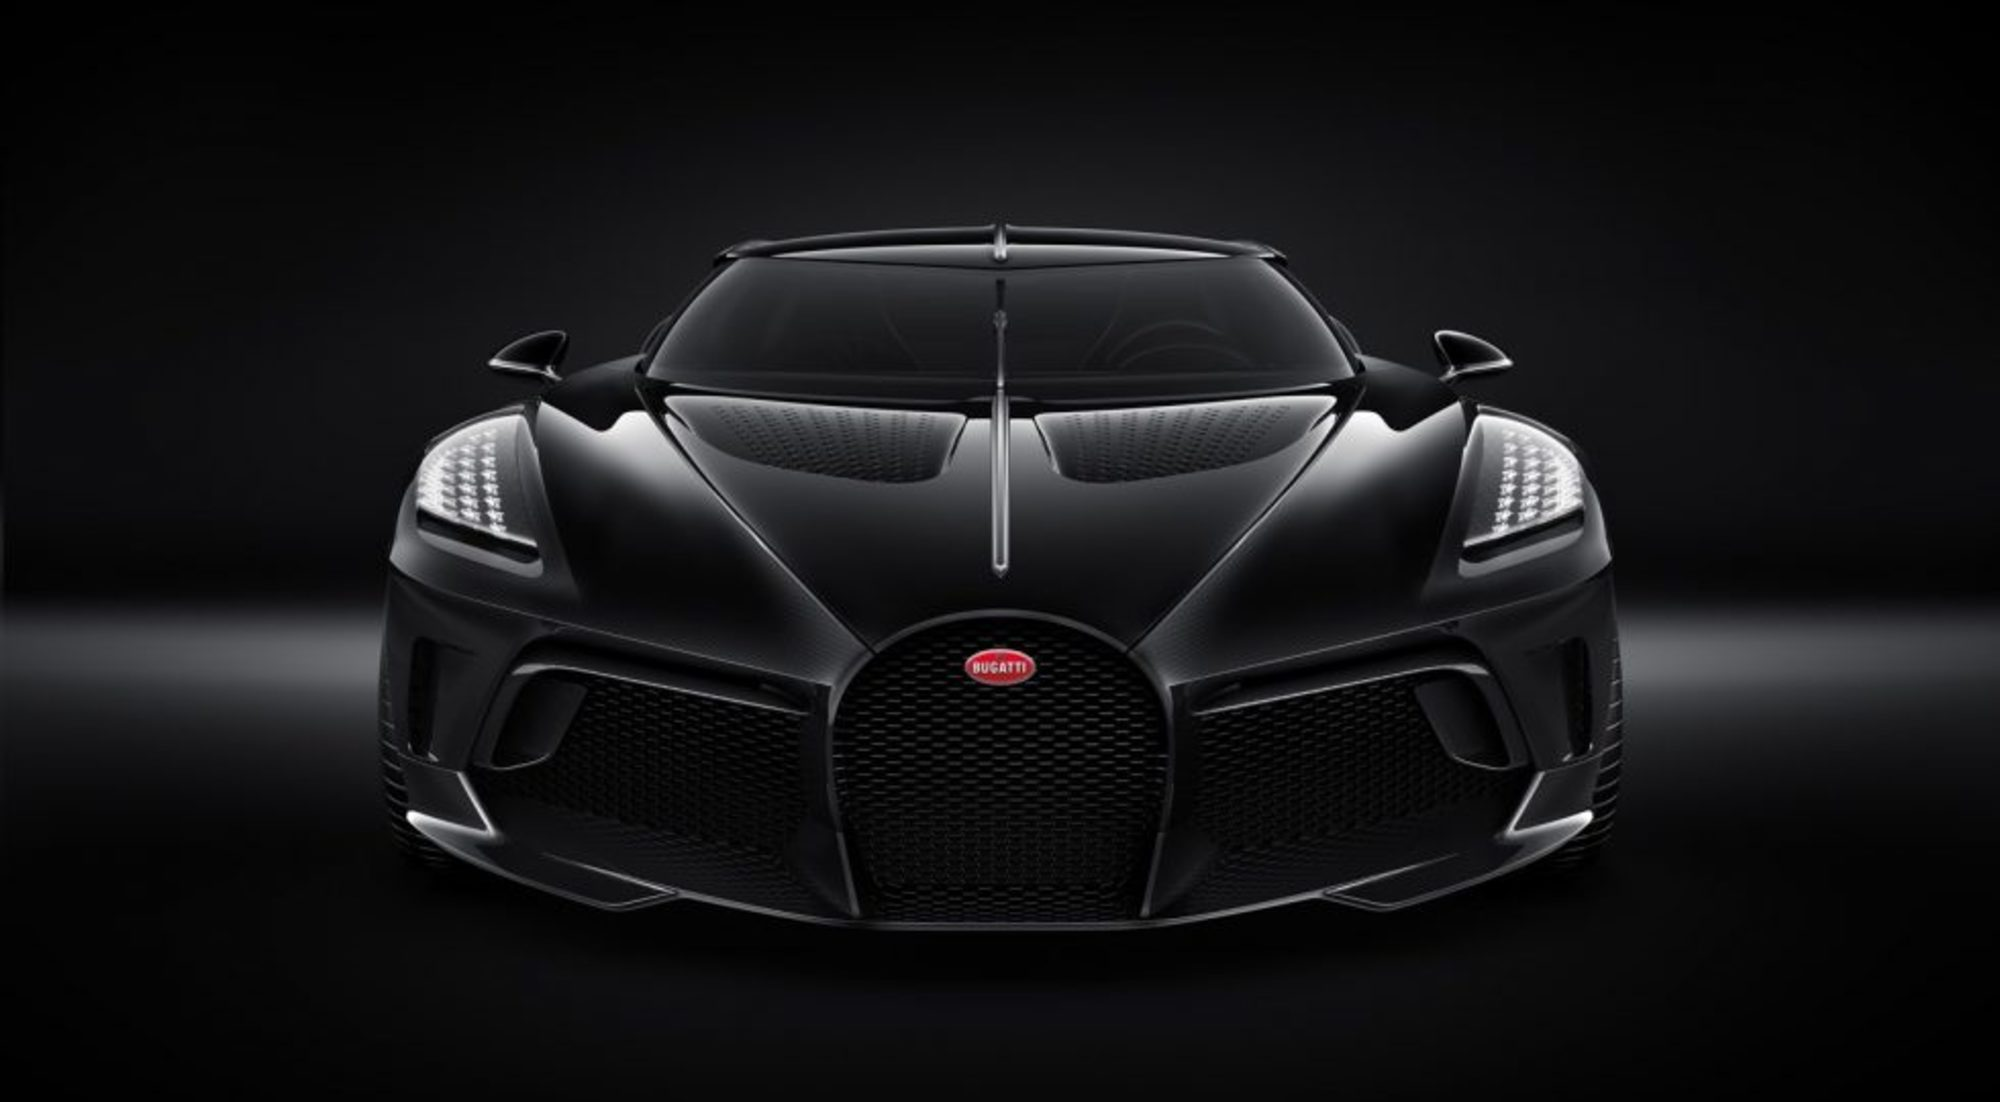 The Bugatti Voiture Noire: specs of the world's most expensive car